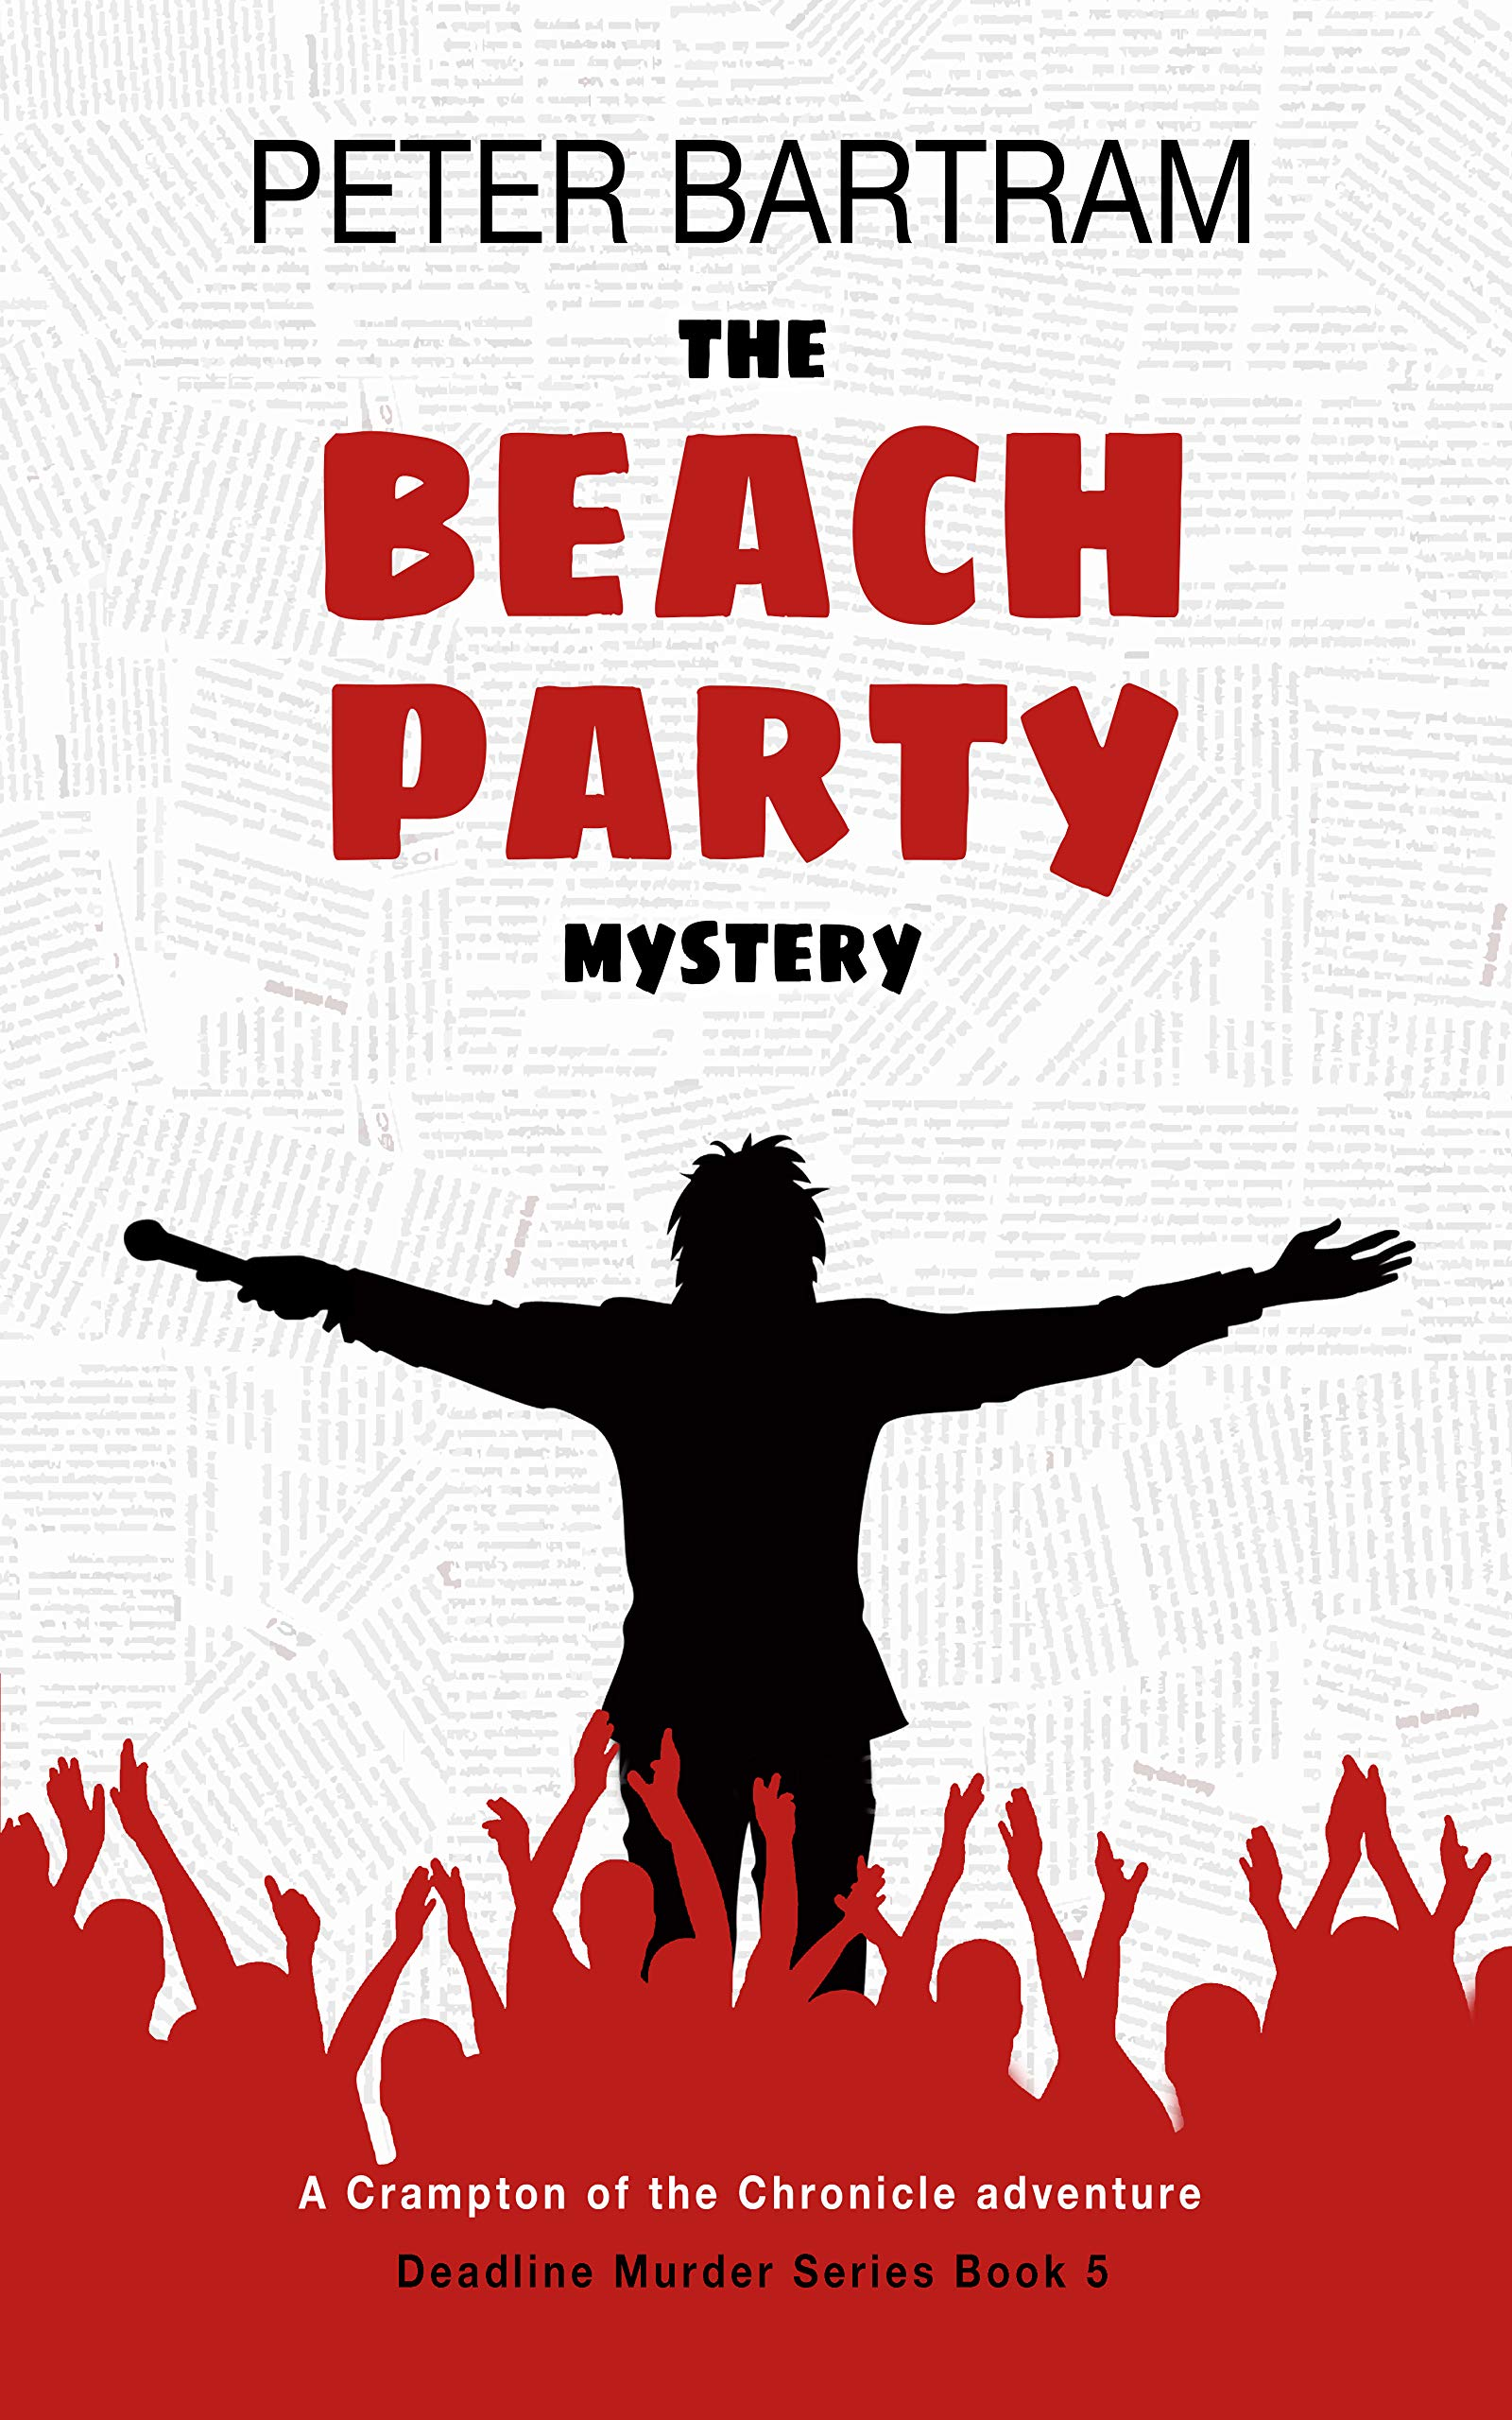 The Beach Party Mystery: A Crampton of the Chronicle adventure (Deadline Murder Series Book 5)